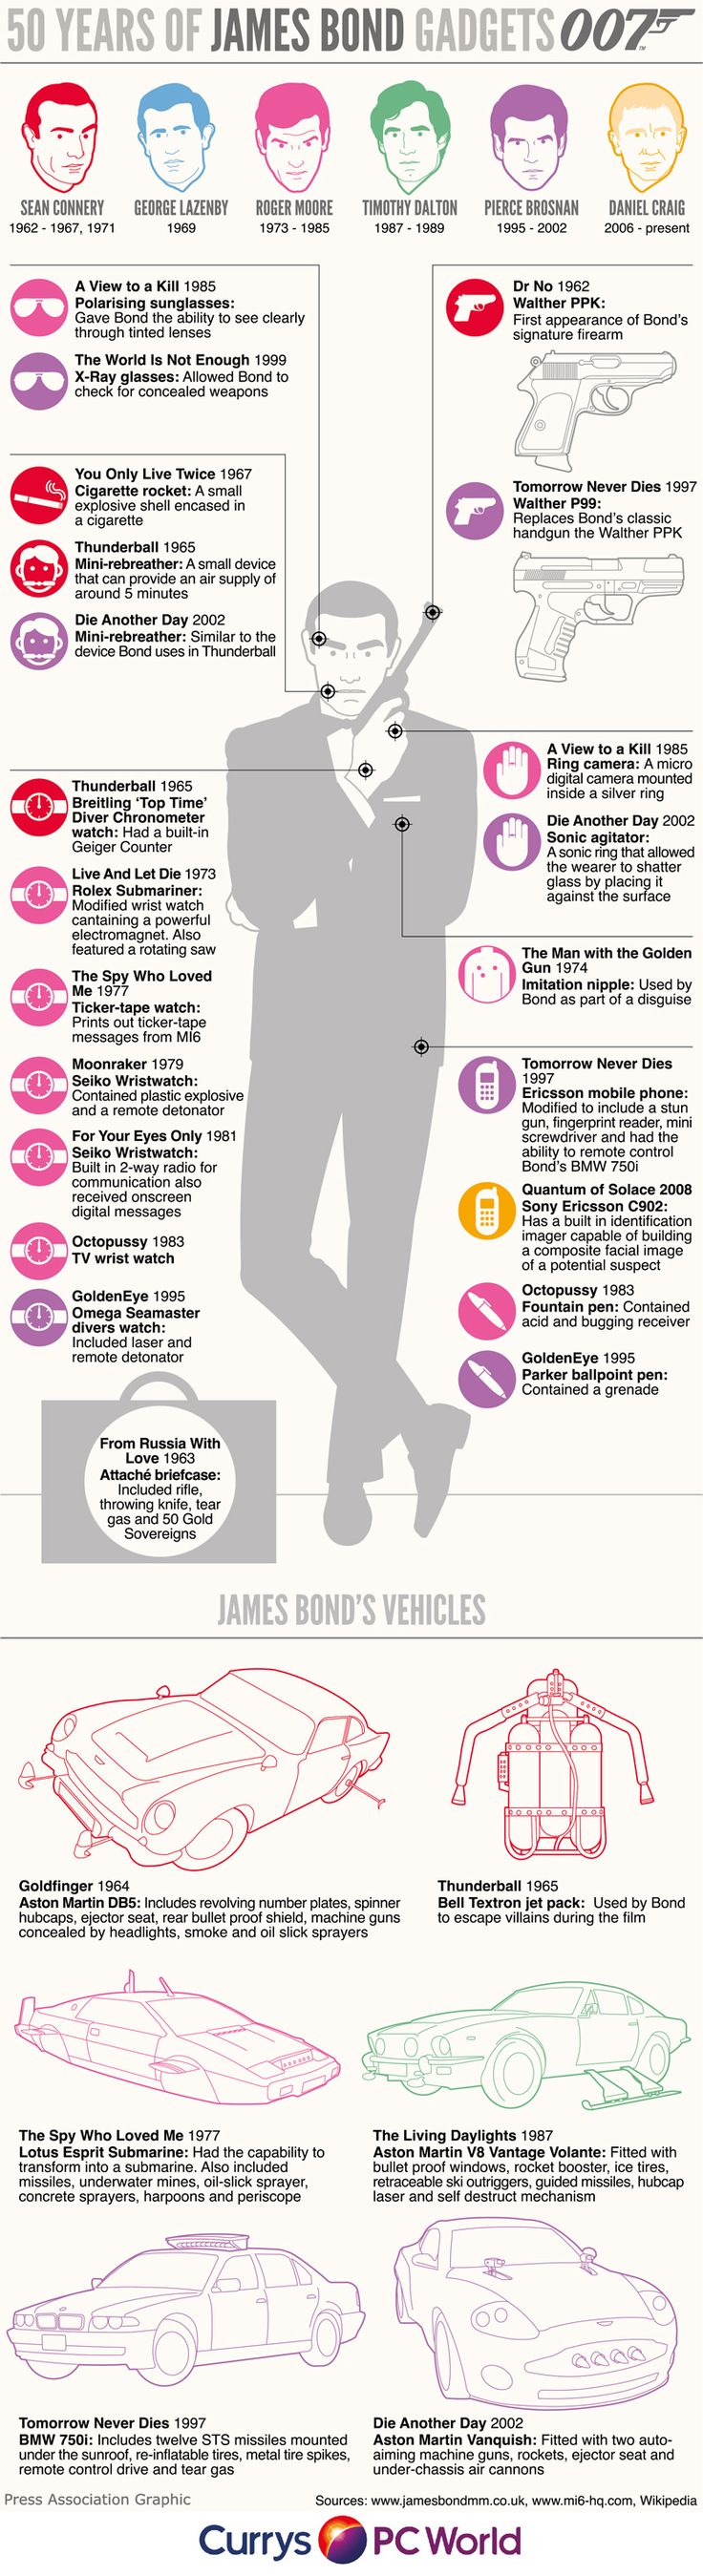 INFOGRAPHIC - 50 Years of James Bond Gadgets